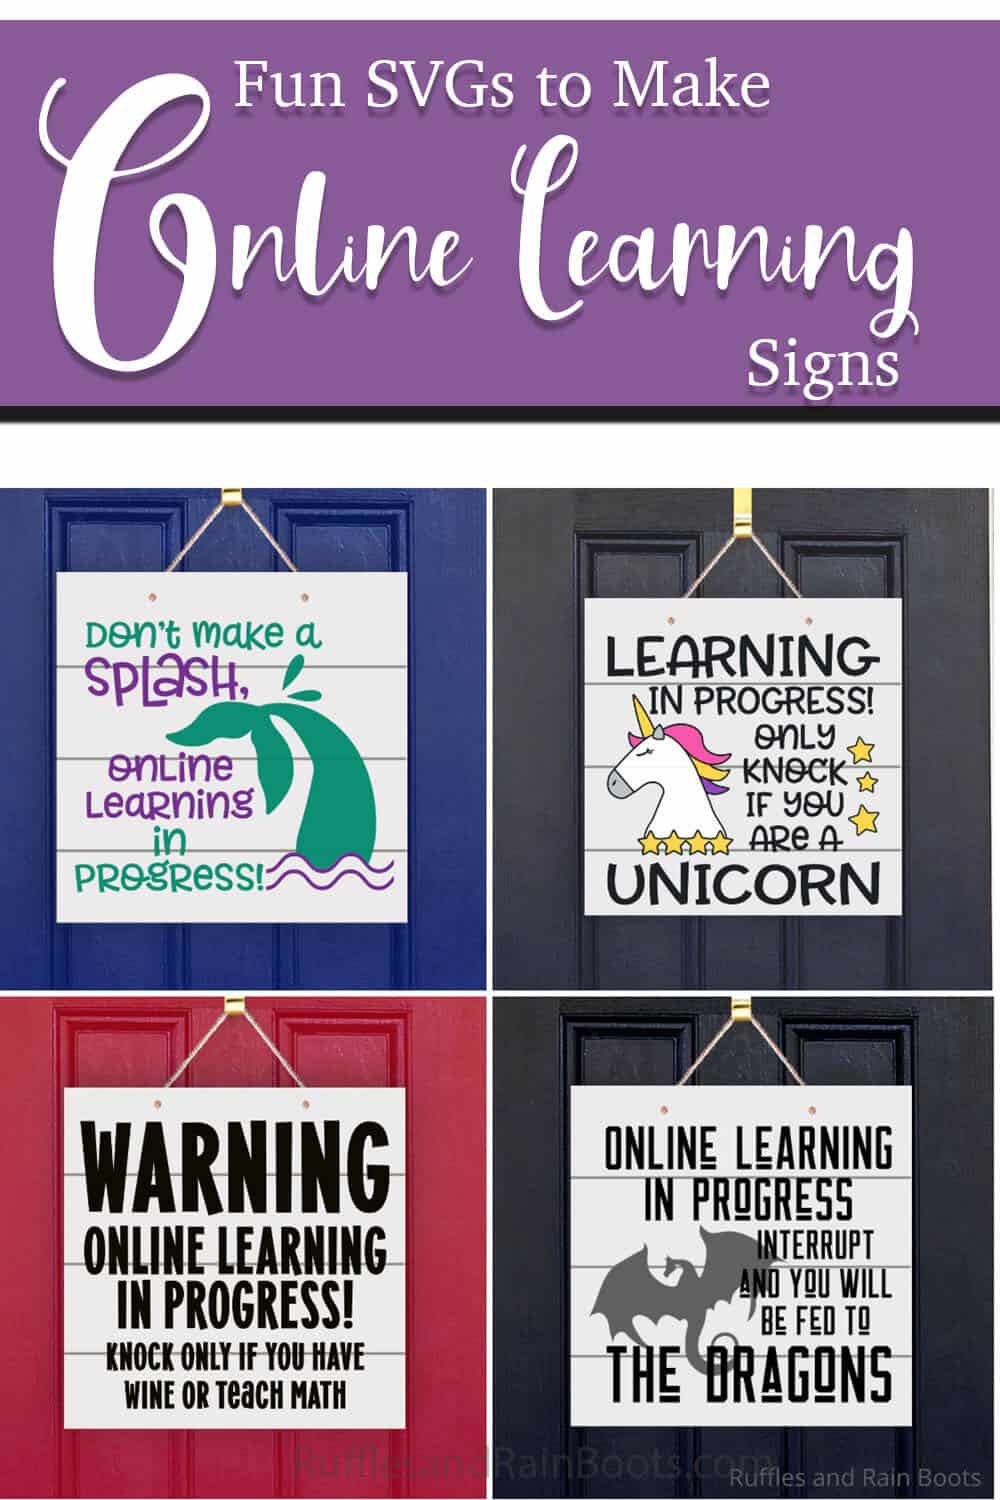 photo collage of funny door sign svgs about online learning with text which reads fun SVGs to make online learning signs